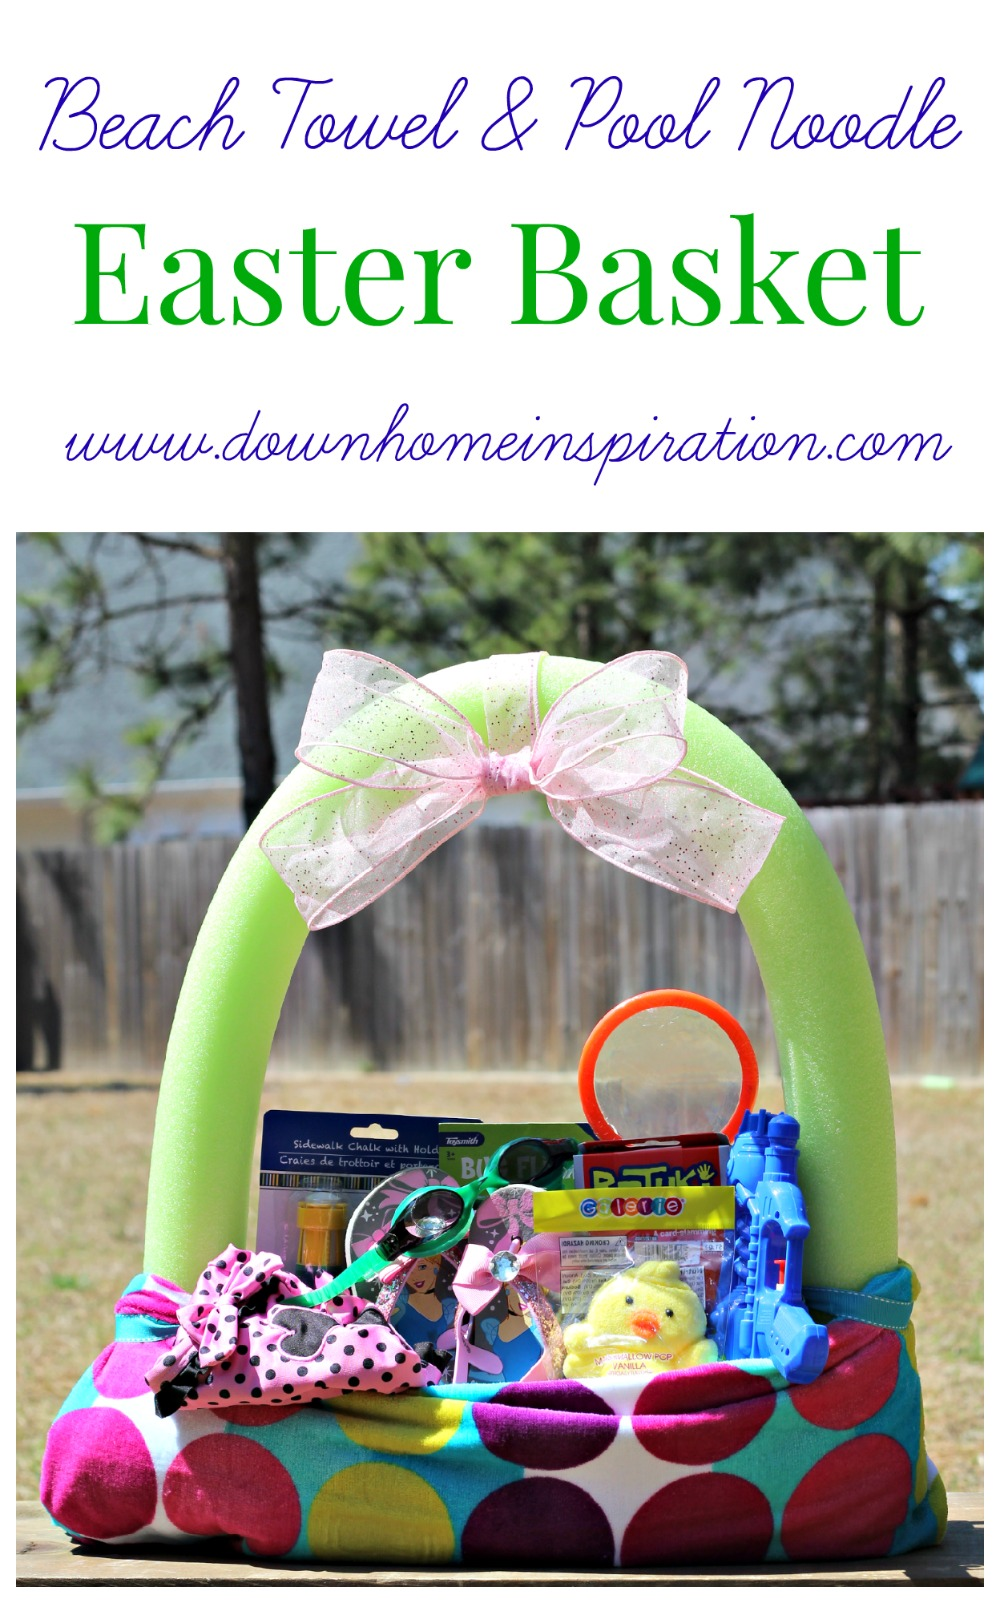 Make a fun easter basket using a beach towel and pool noodle down beach towel pool noodle easter basket 3 negle Images